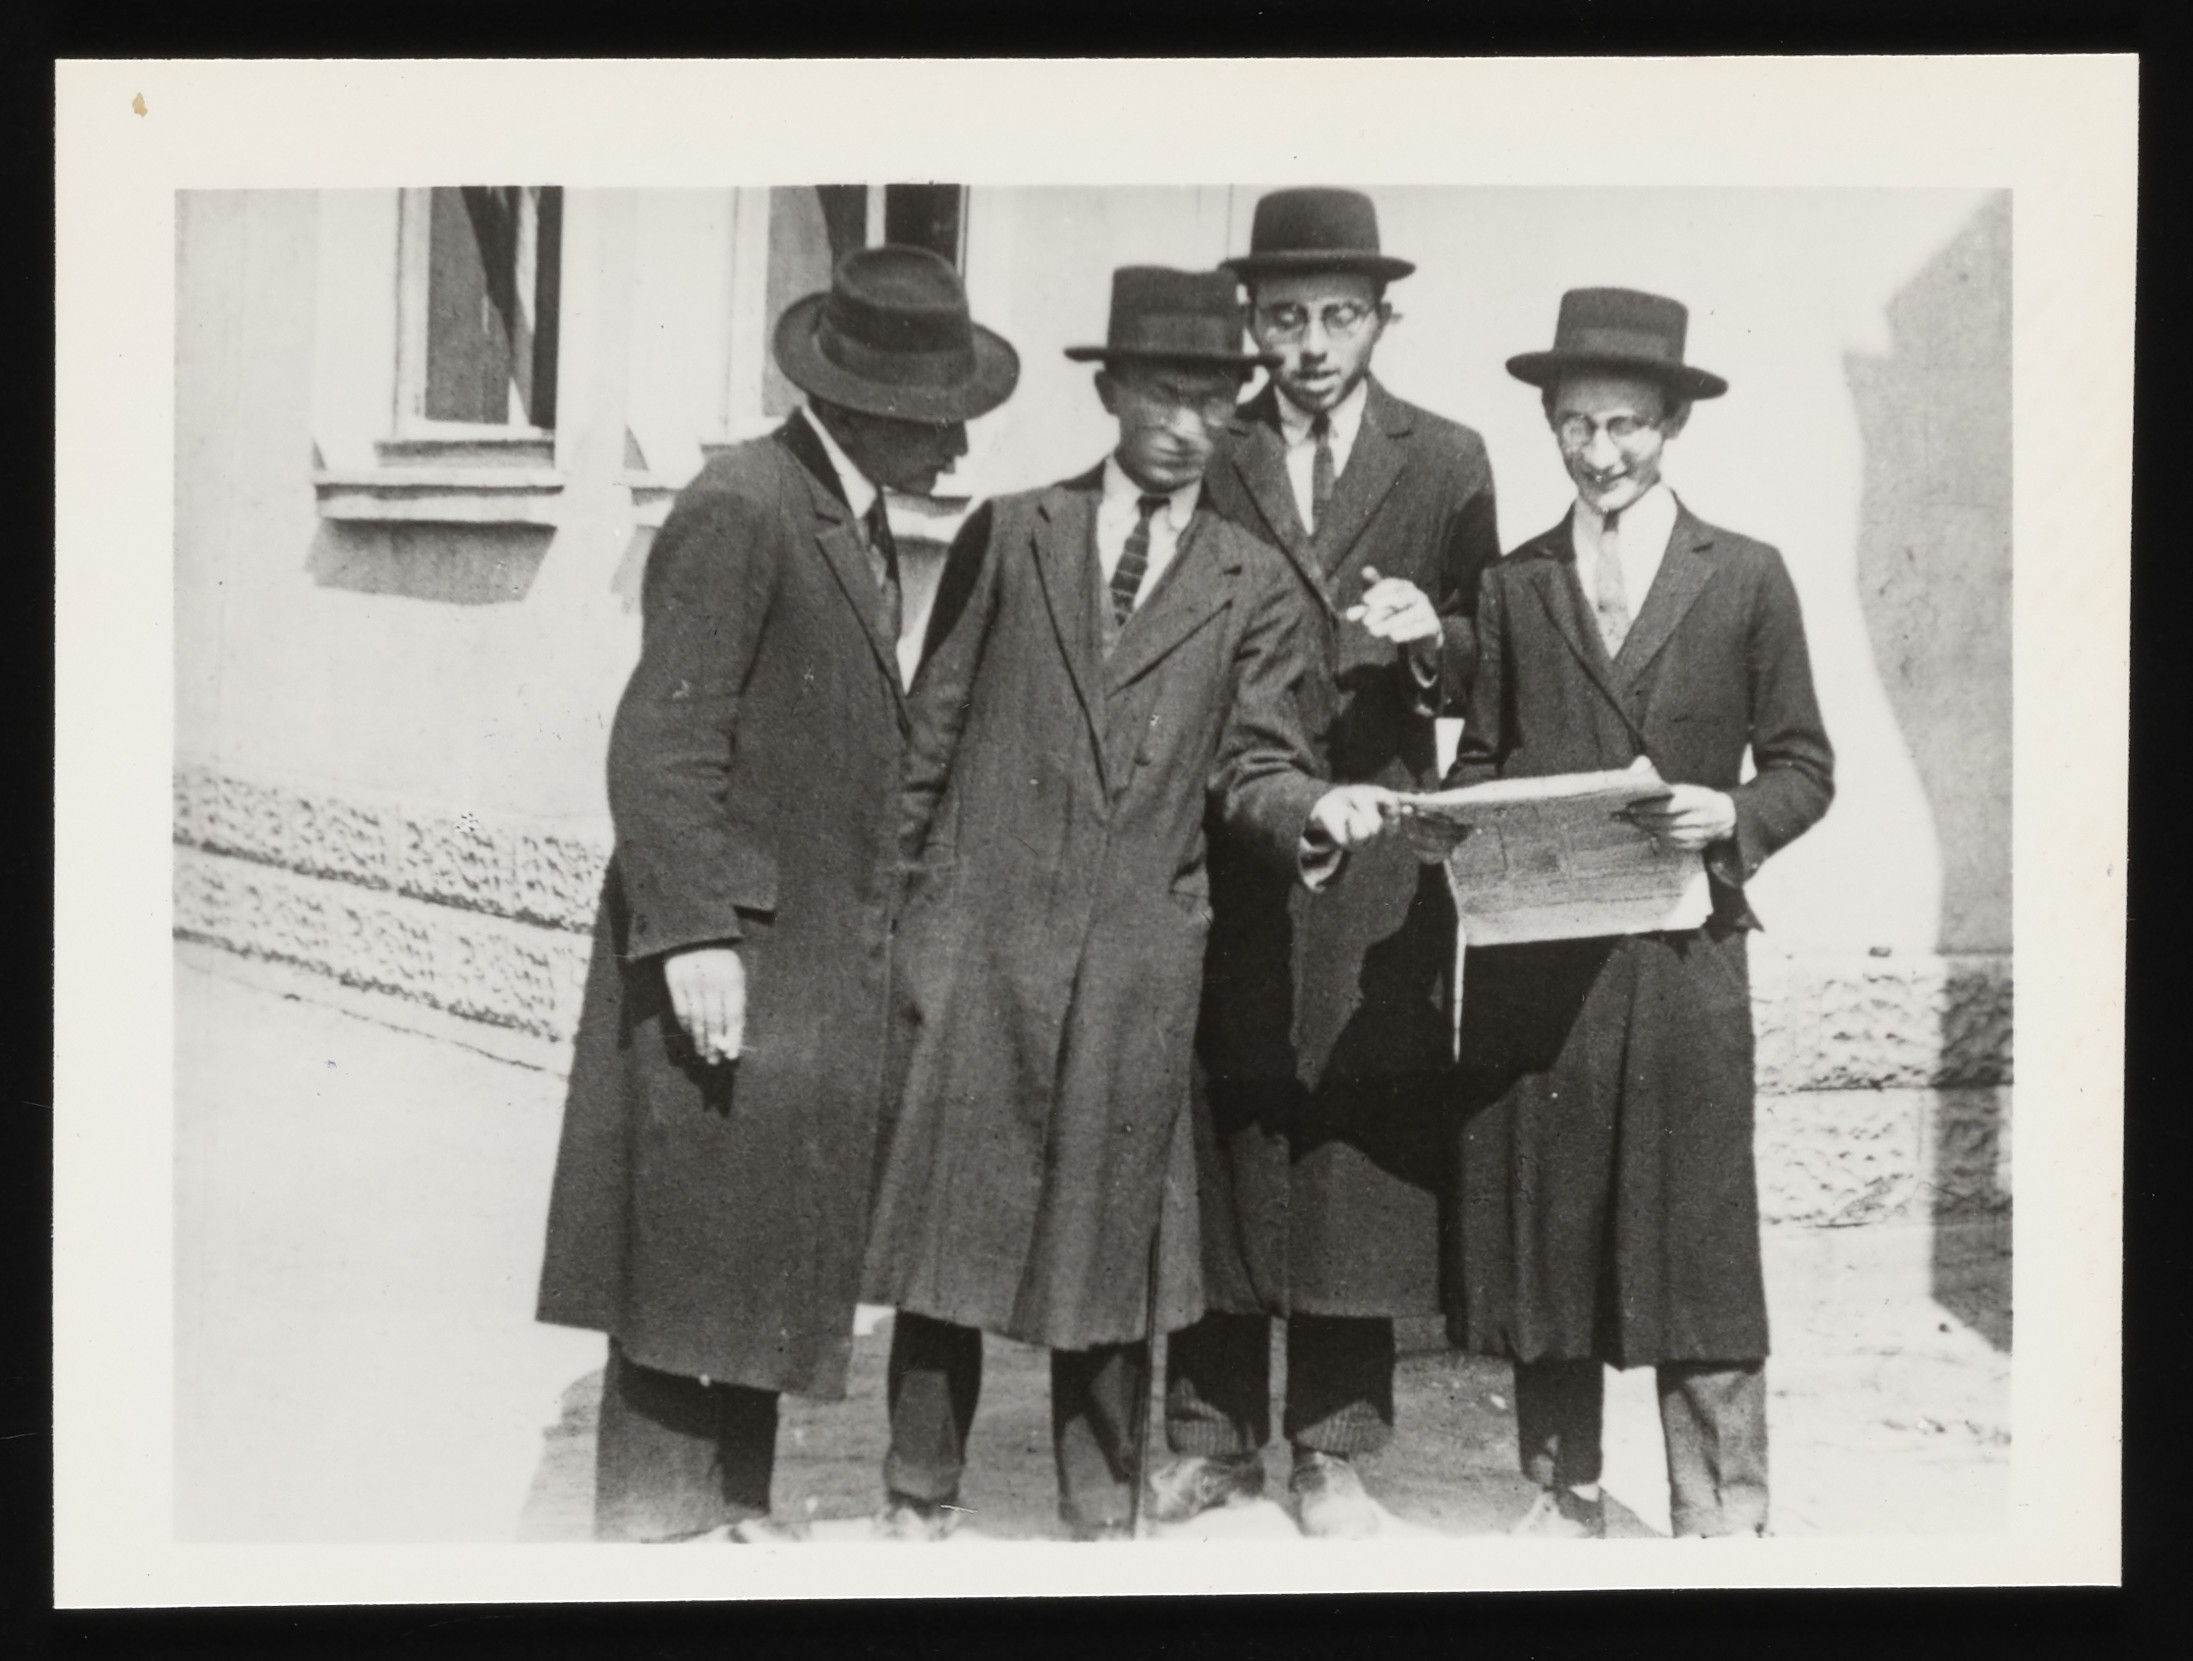 Four young Jewish religious men read a newspaper on a street corner in Kolbuszowa.  Pictured from right to left: (unknown), Meilech Kirshenbaum, (unknown), and Mordechai Israelowicz.